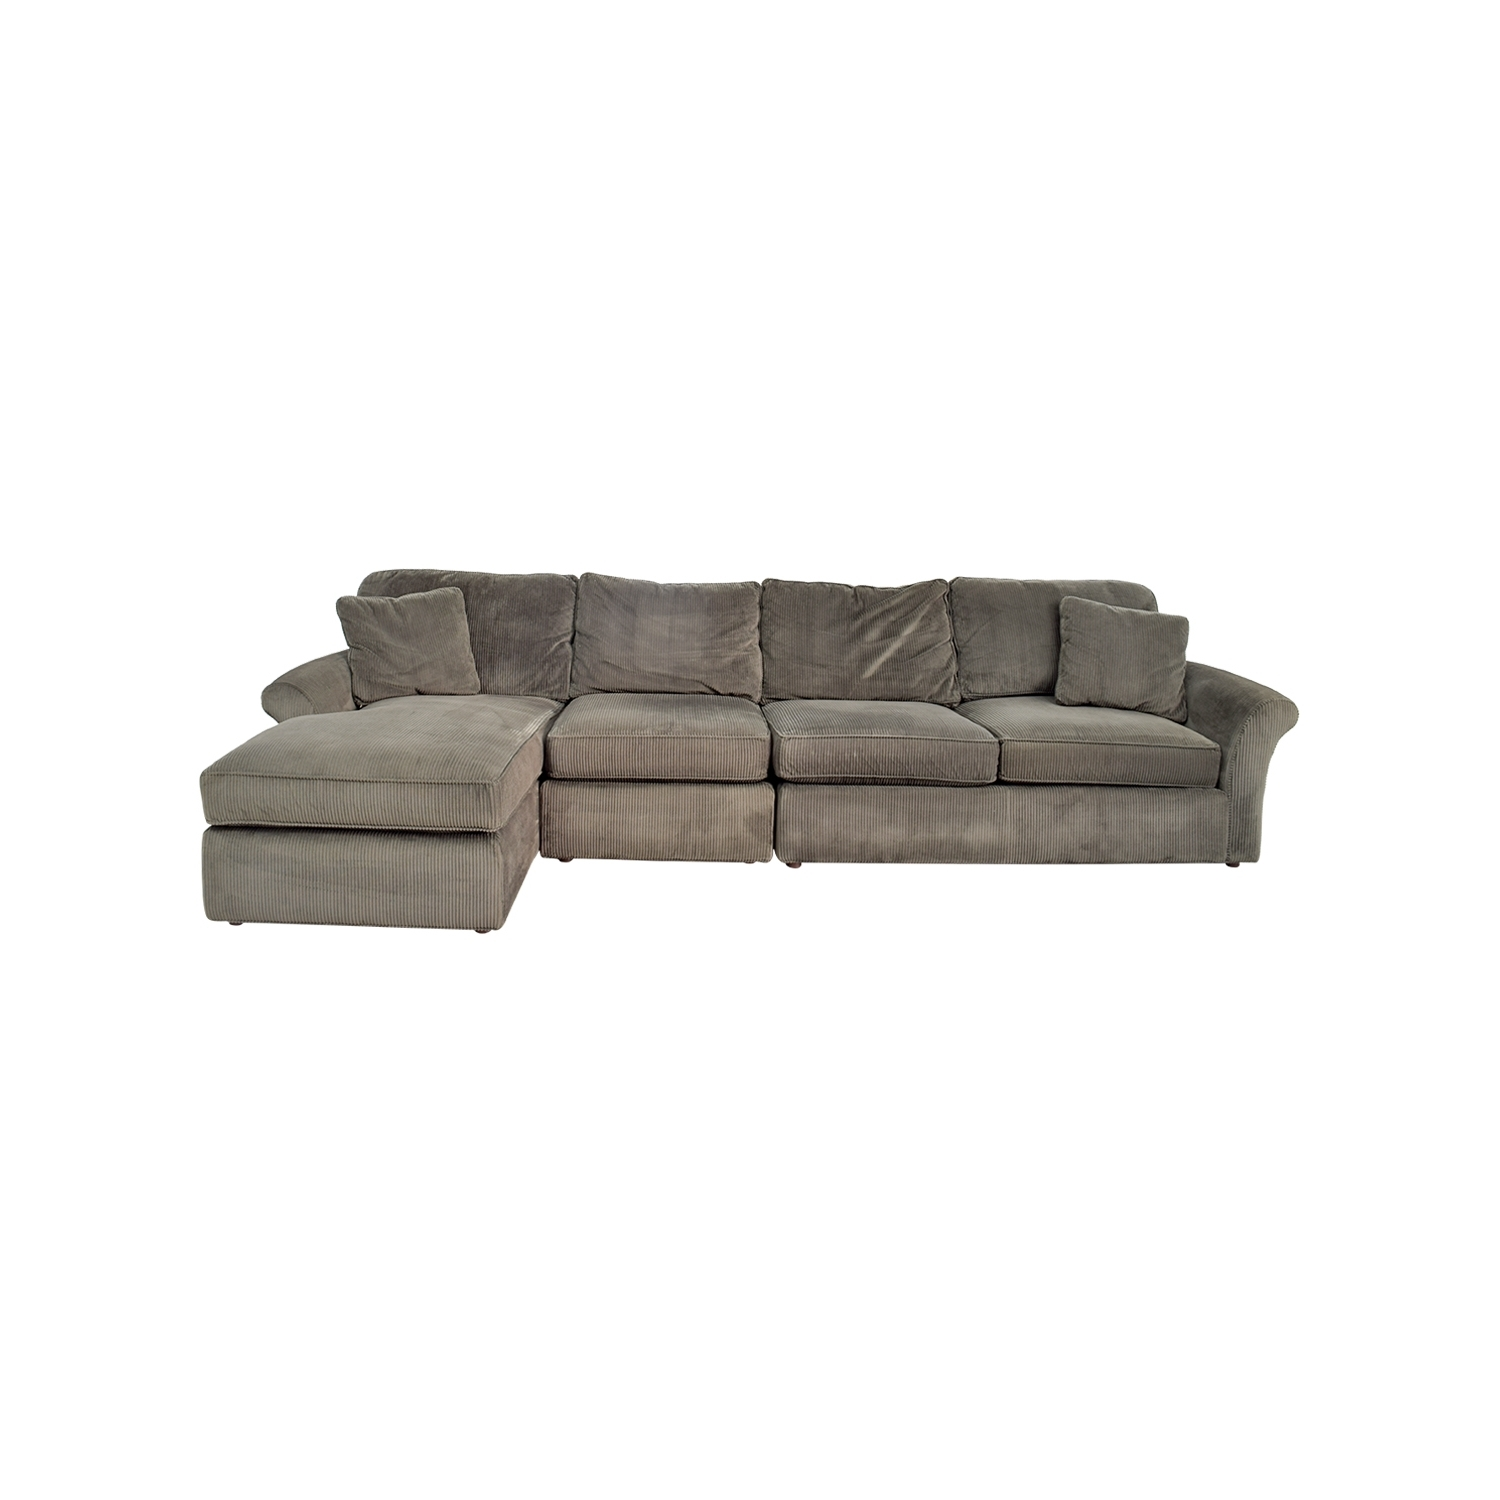 [%74% Off – Macy's Macy's Modern Concepts Charcoal Gray Corduroy Intended For Most Up To Date Macys Sectional Sofas|Macys Sectional Sofas Inside Most Recent 74% Off – Macy's Macy's Modern Concepts Charcoal Gray Corduroy|2018 Macys Sectional Sofas Inside 74% Off – Macy's Macy's Modern Concepts Charcoal Gray Corduroy|Well Known 74% Off – Macy's Macy's Modern Concepts Charcoal Gray Corduroy Inside Macys Sectional Sofas%] (View 10 of 15)